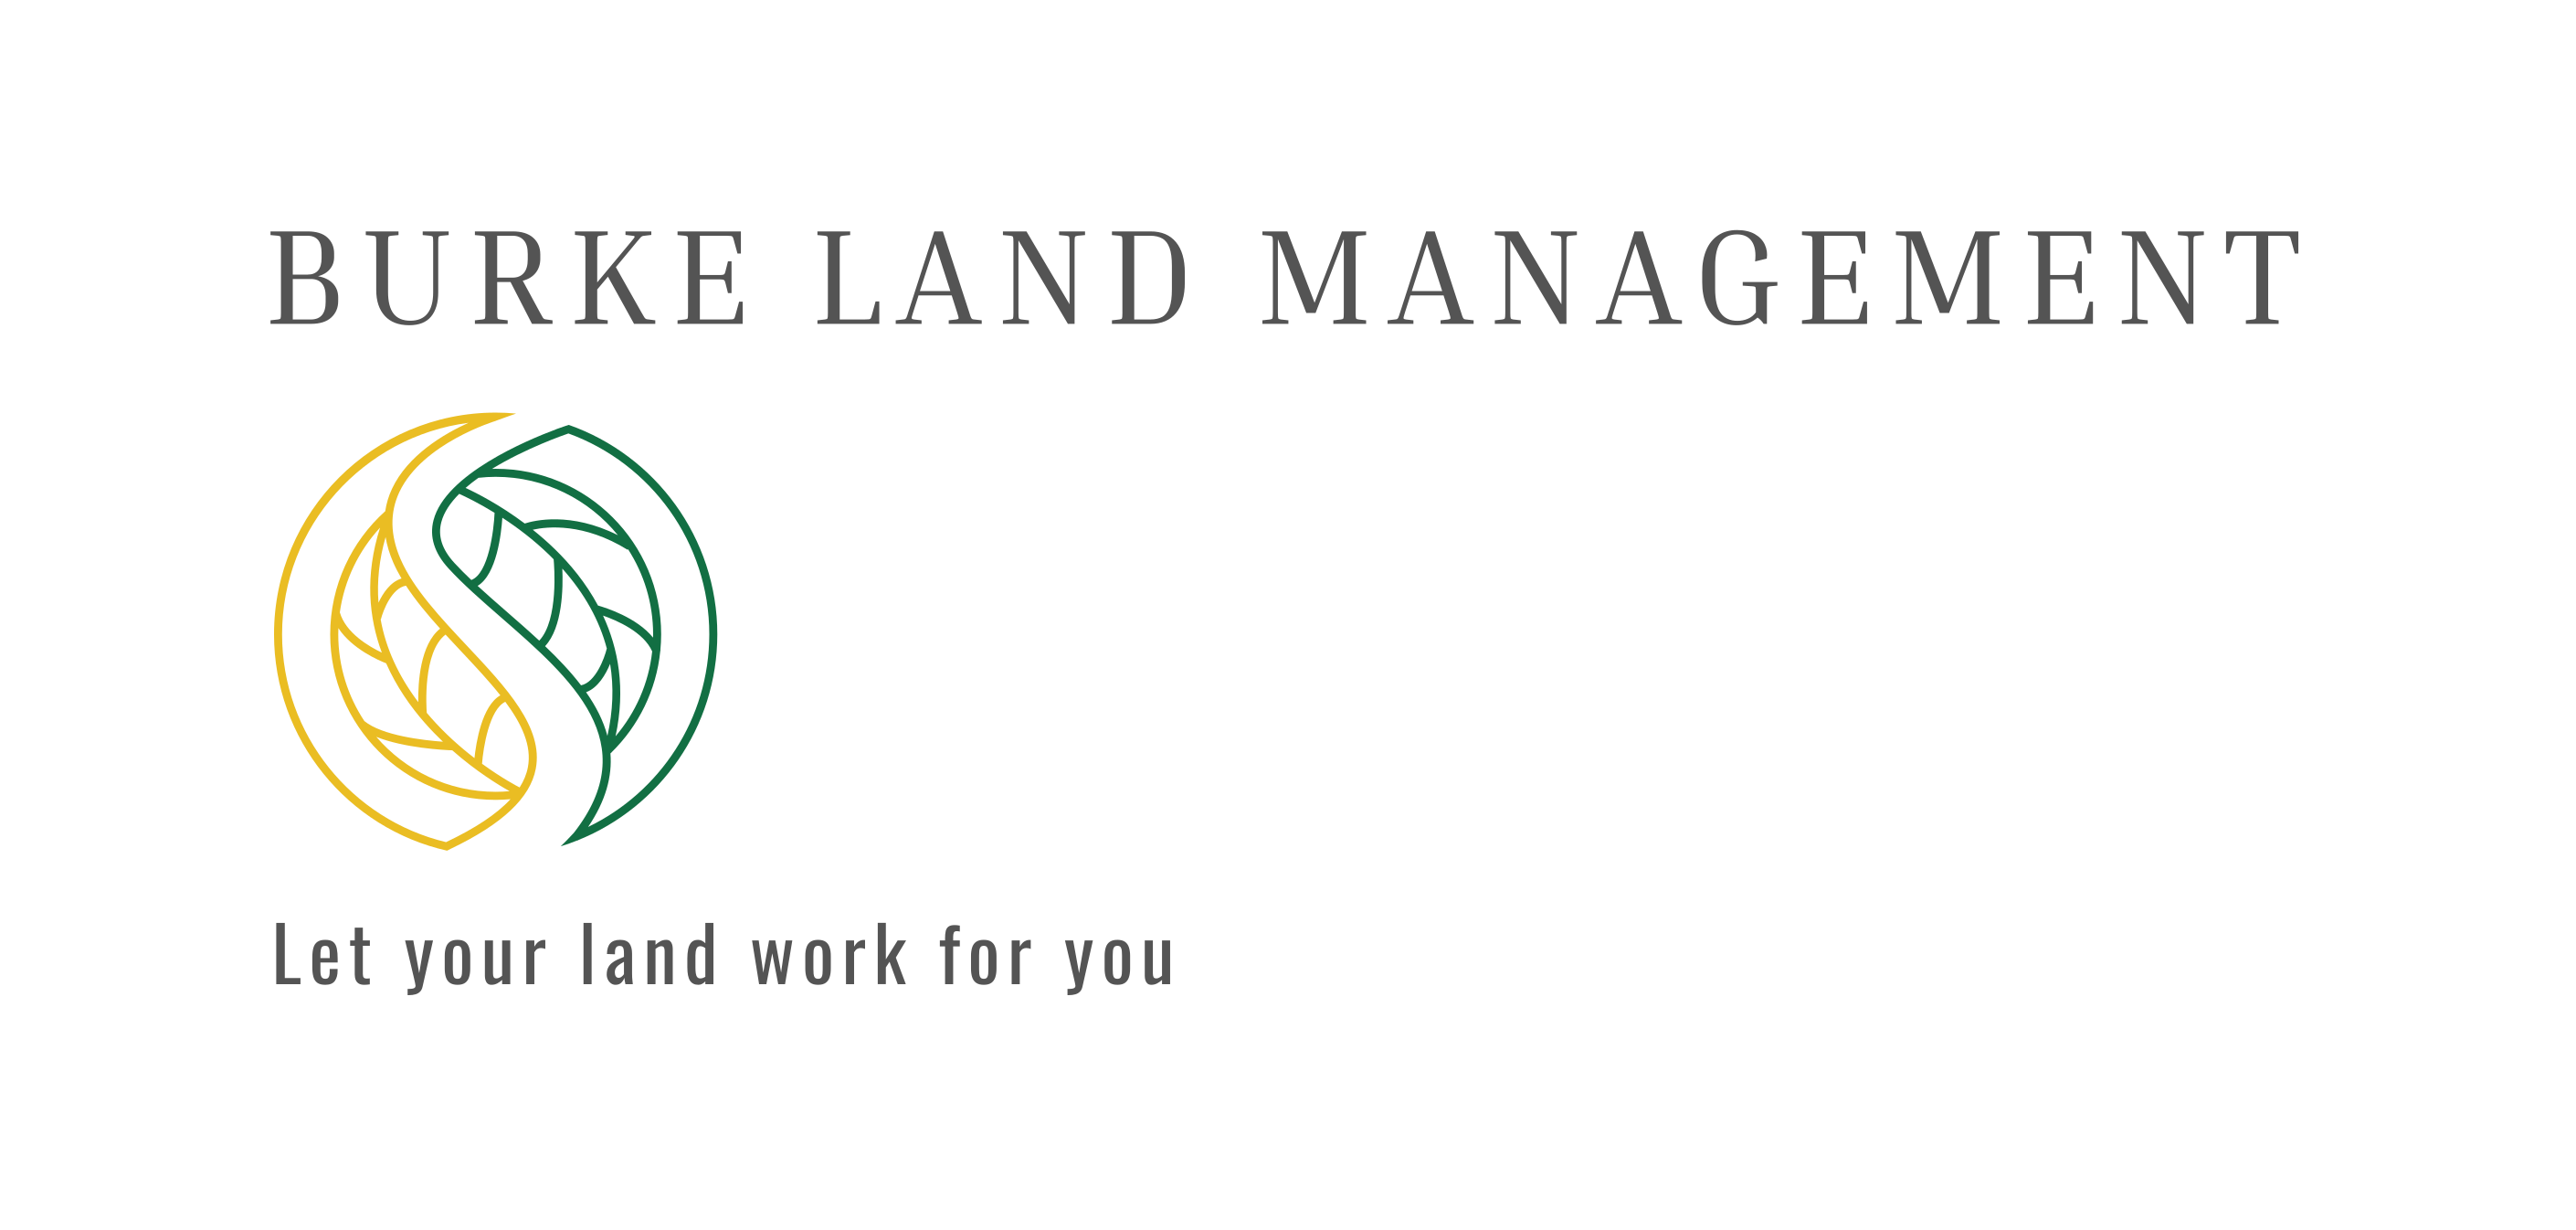 Burke Land Management